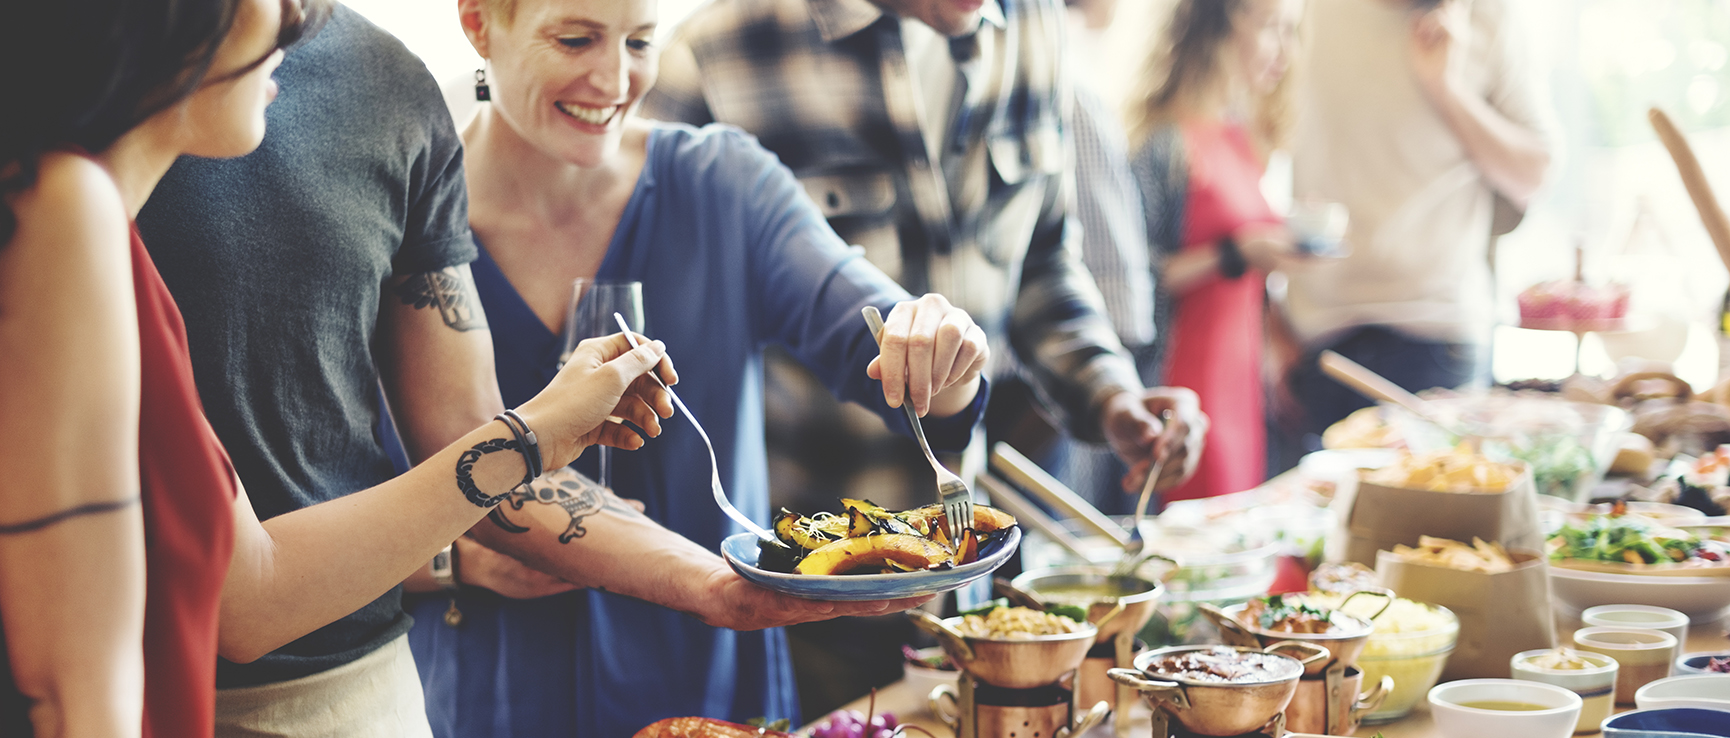 brunch photo people food_crop for web